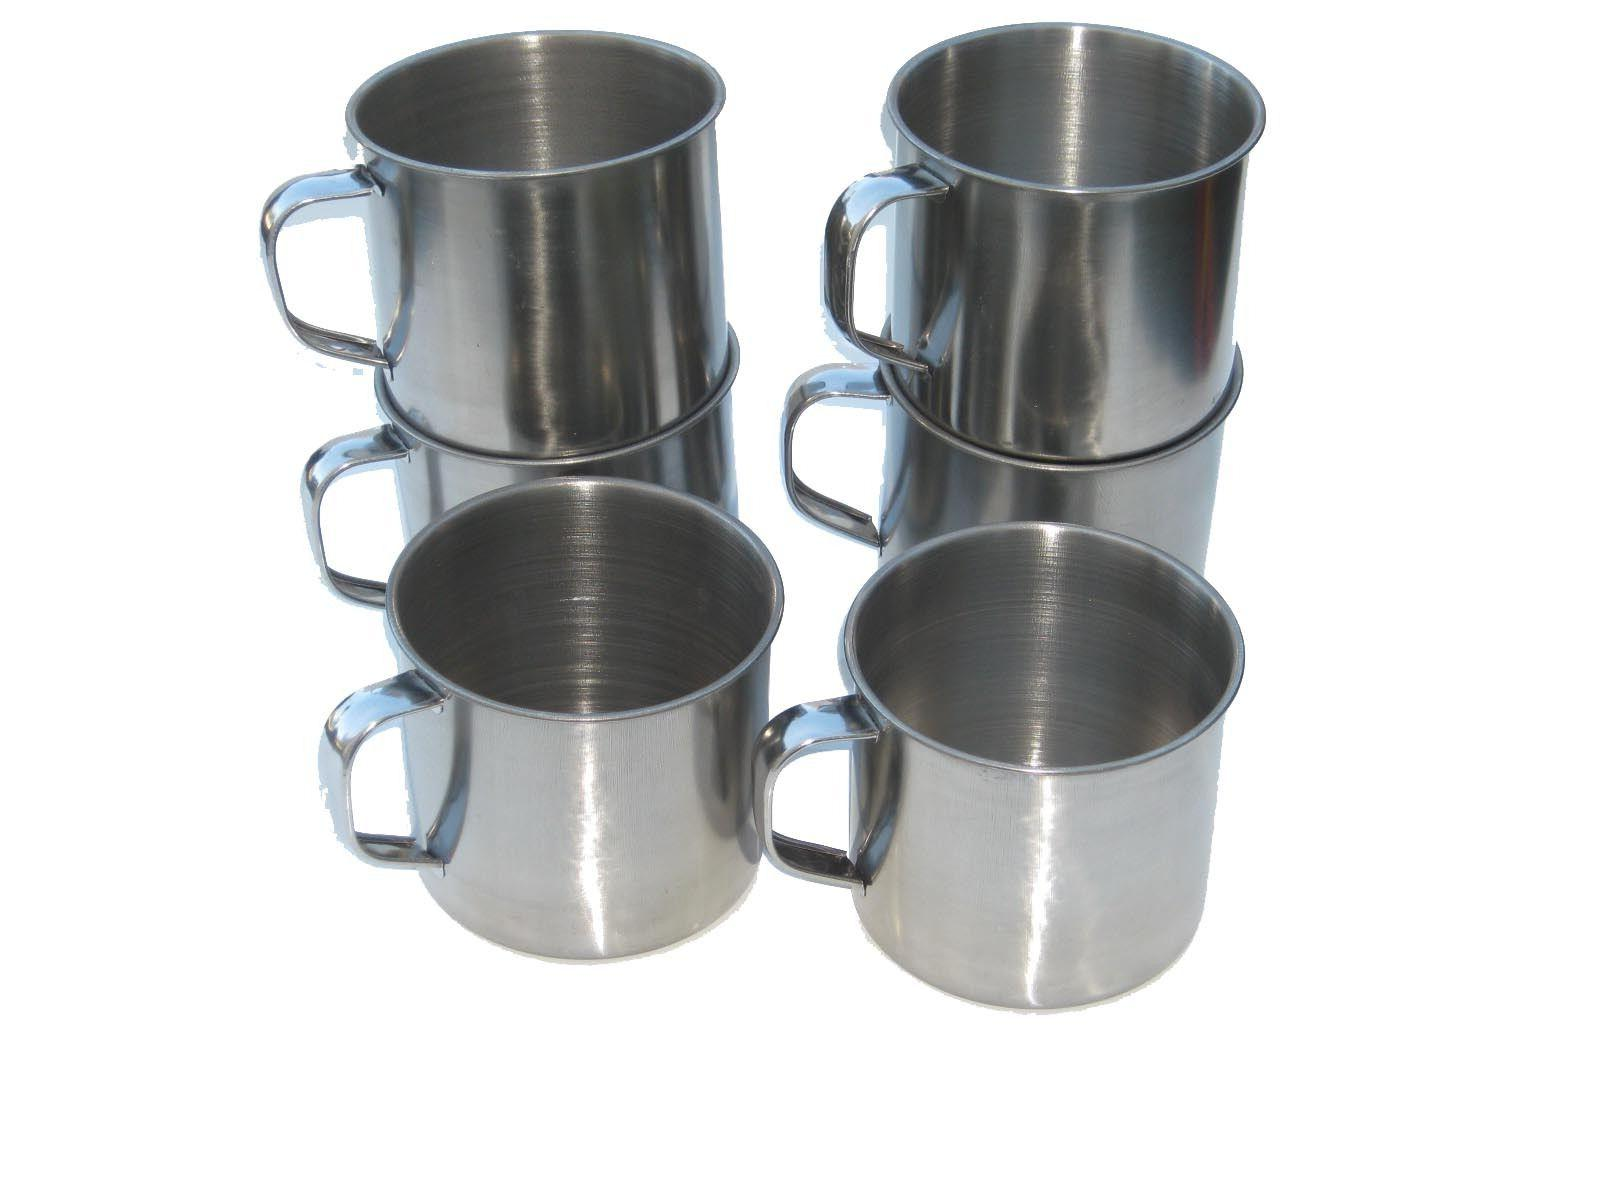 stainless steel mugs cups